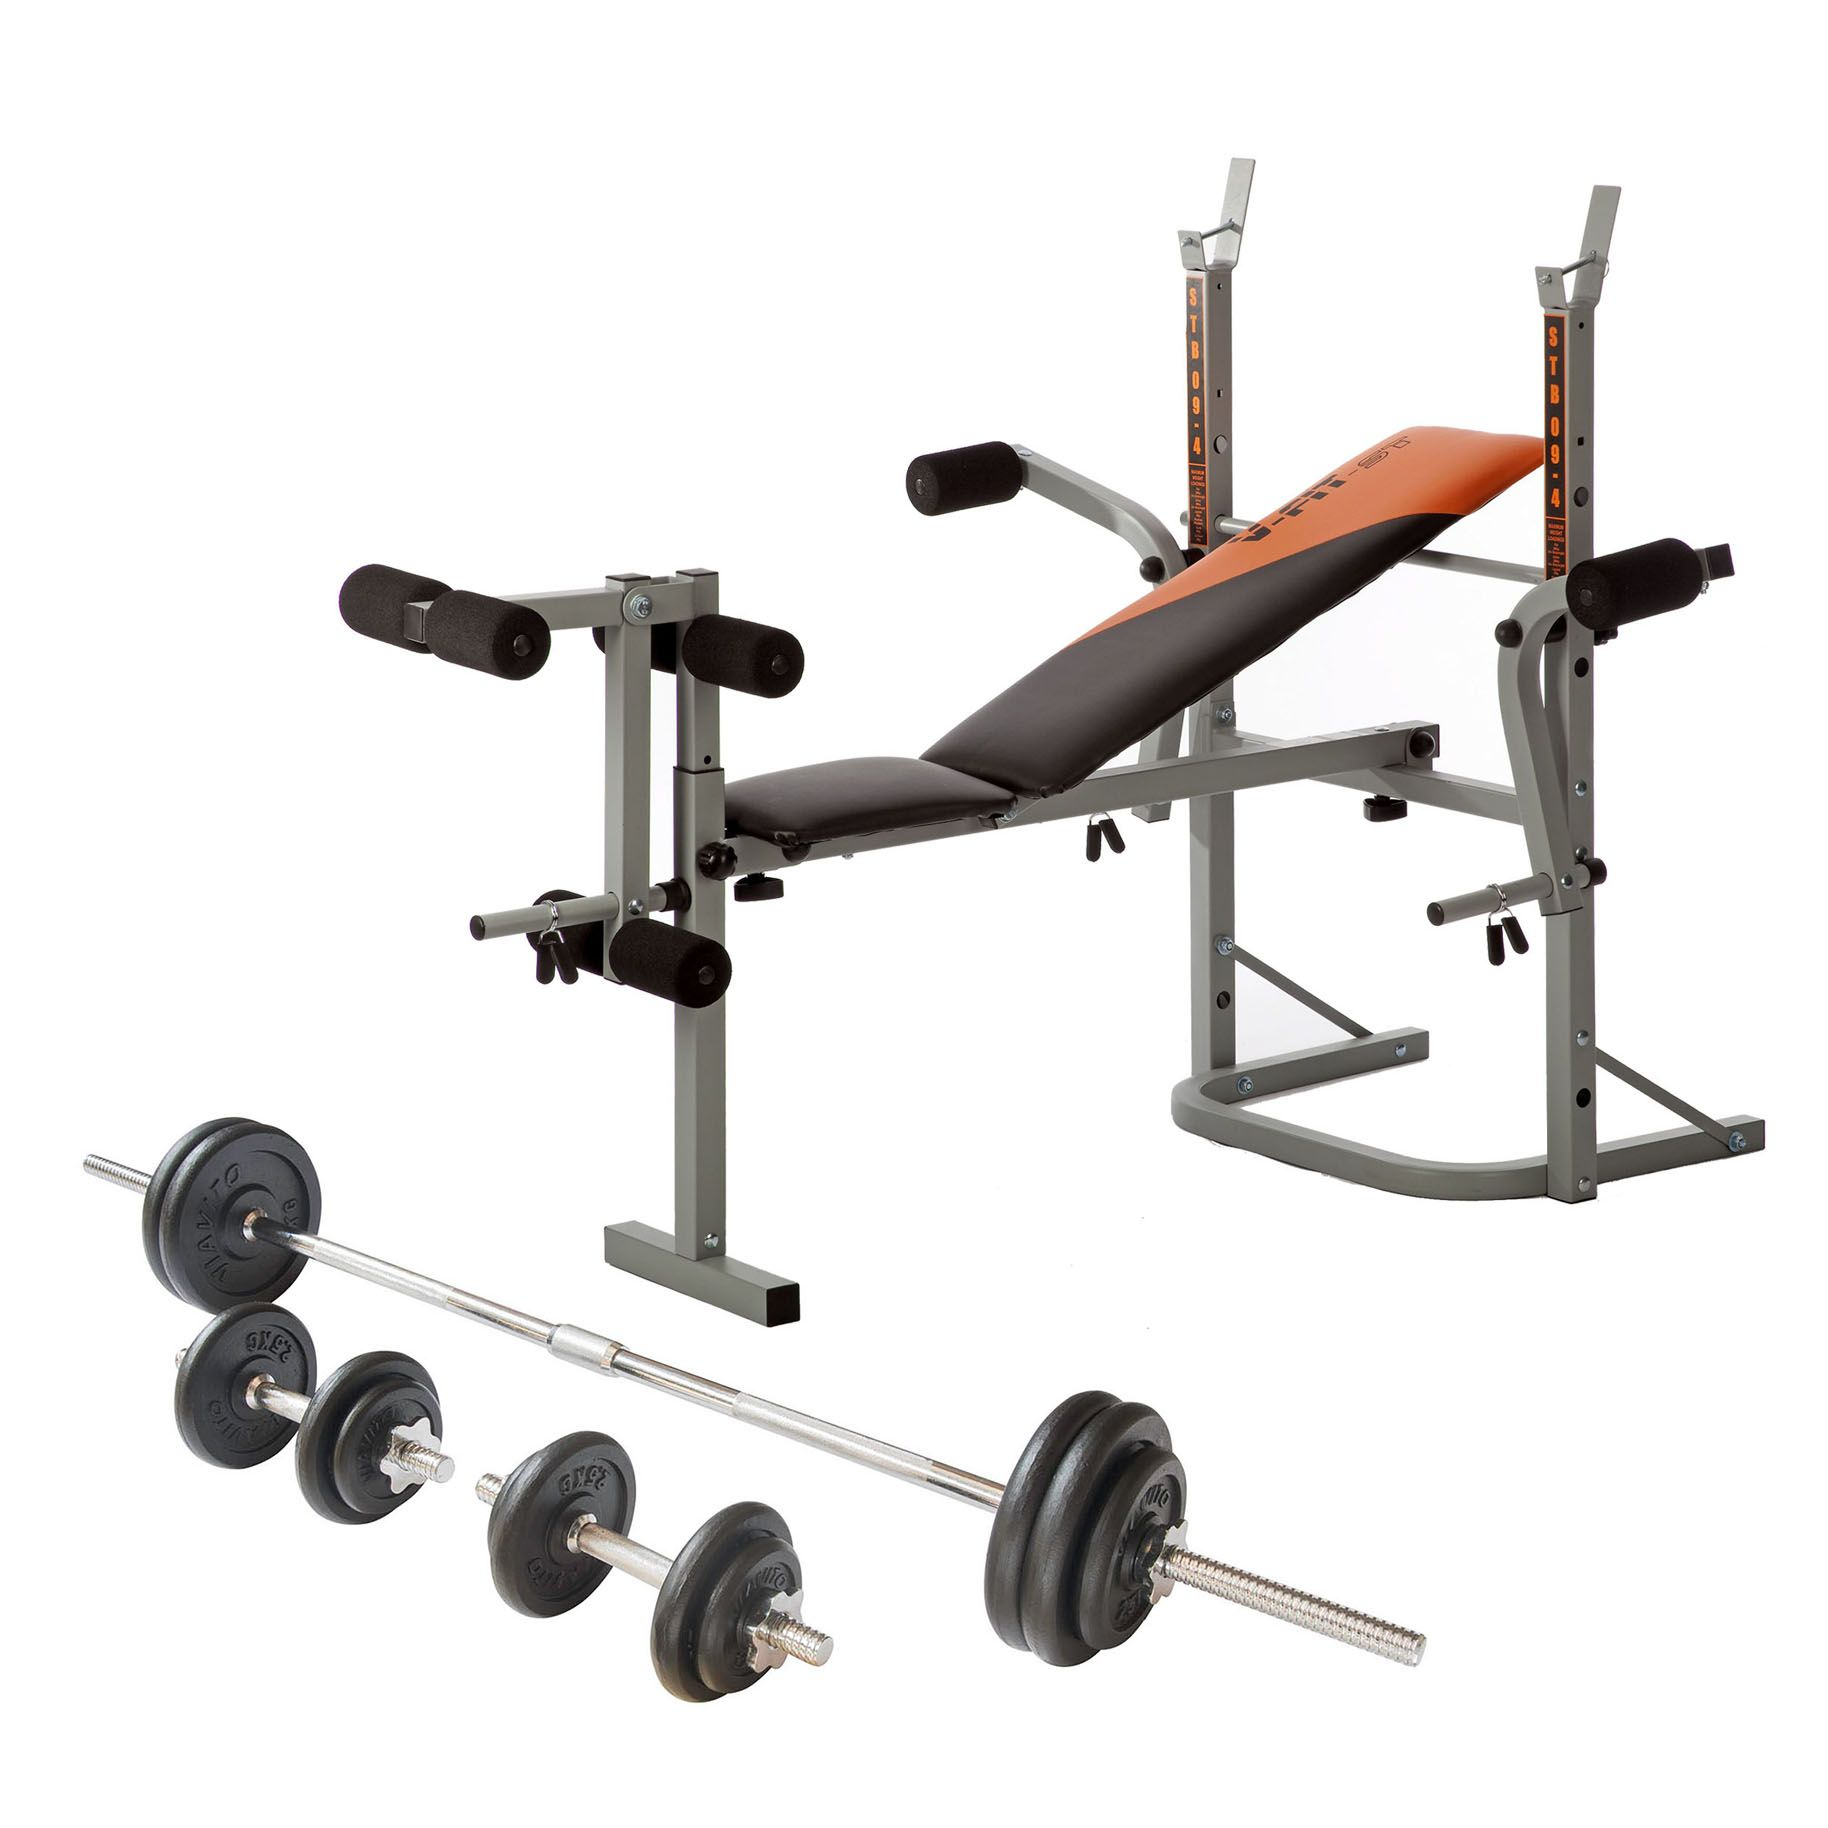 V Fit Folding Weight Bench And Viavito 50kg Cast Iron Weight Set: bench and weight set